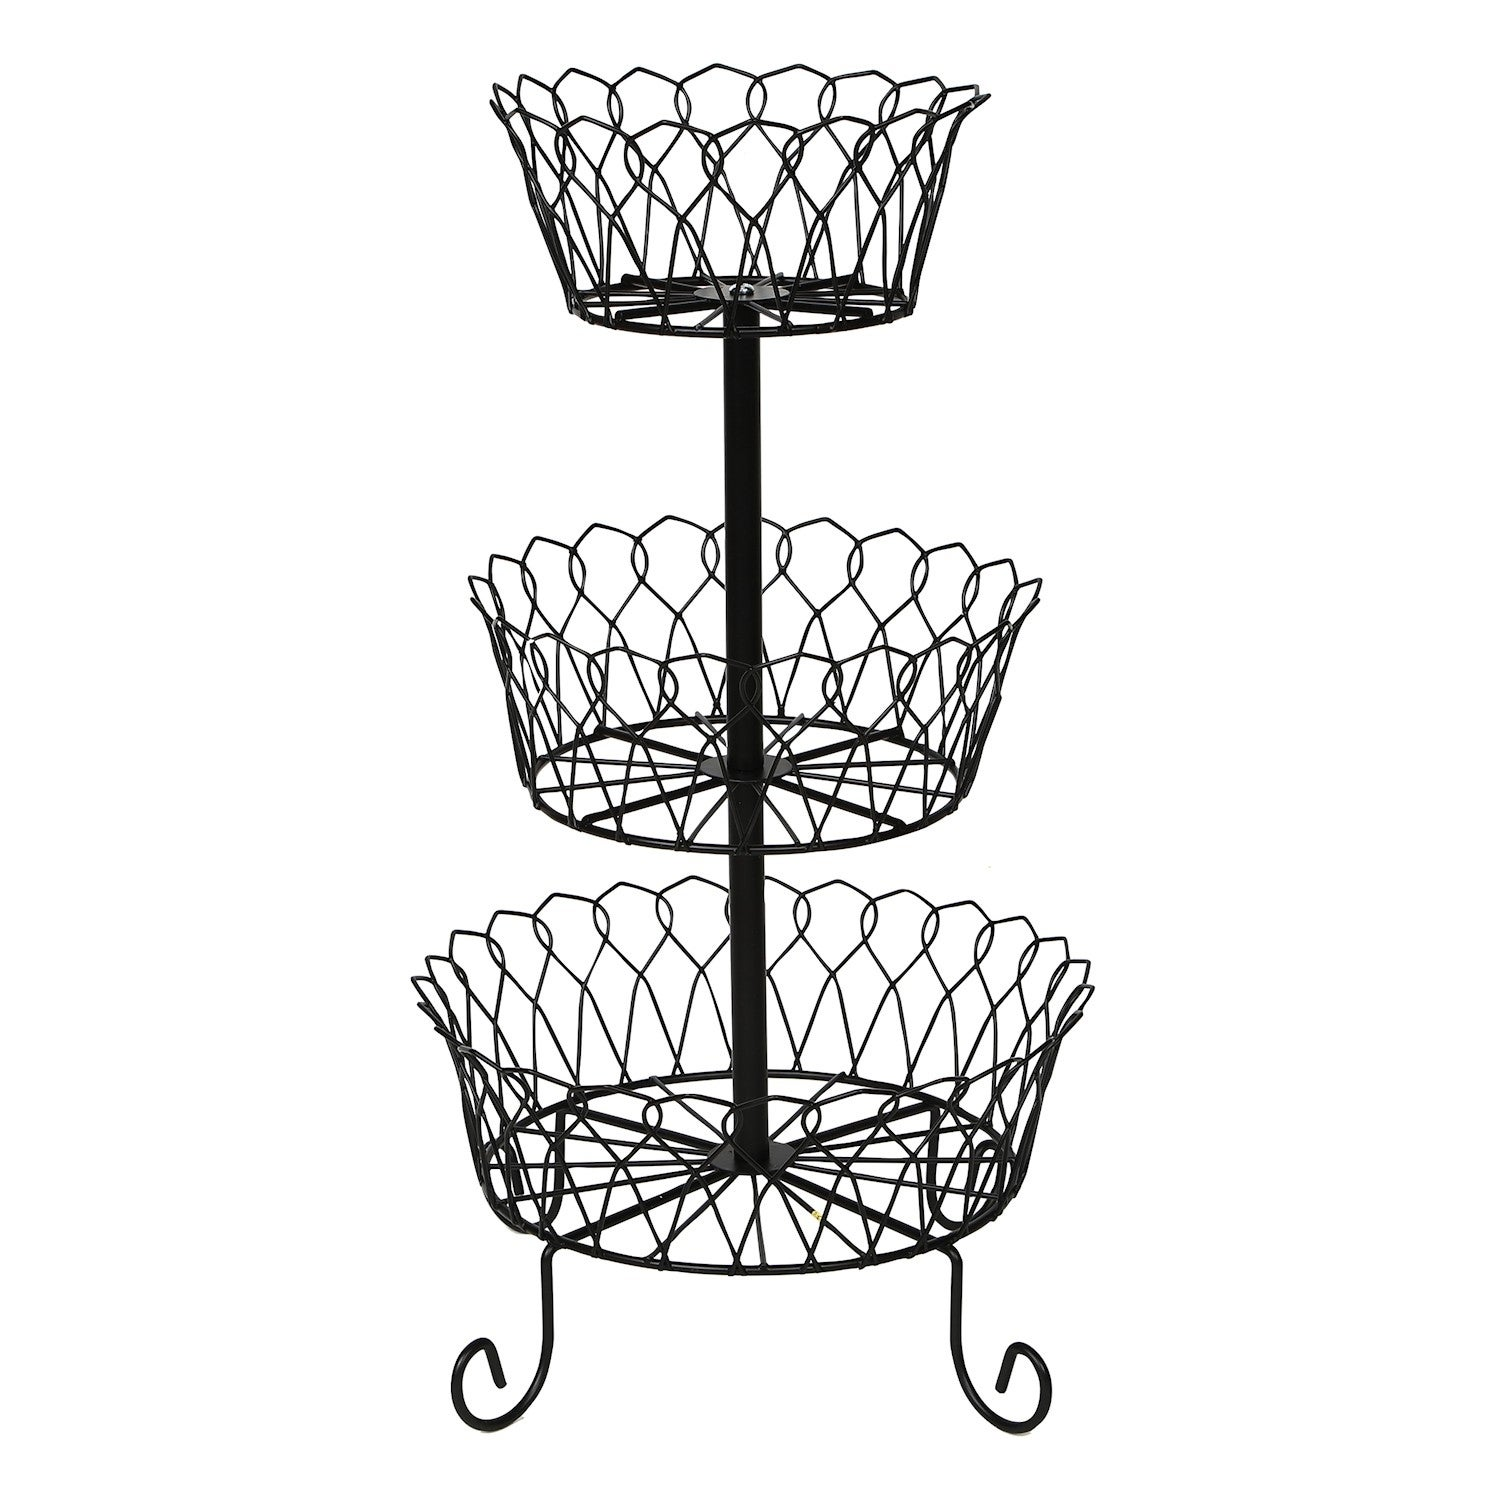 Home District 3 Tier Iron Fruit Basket Stand Footed Wire Graduated Food Storage Bowls For Countertop And Dining Table Metal